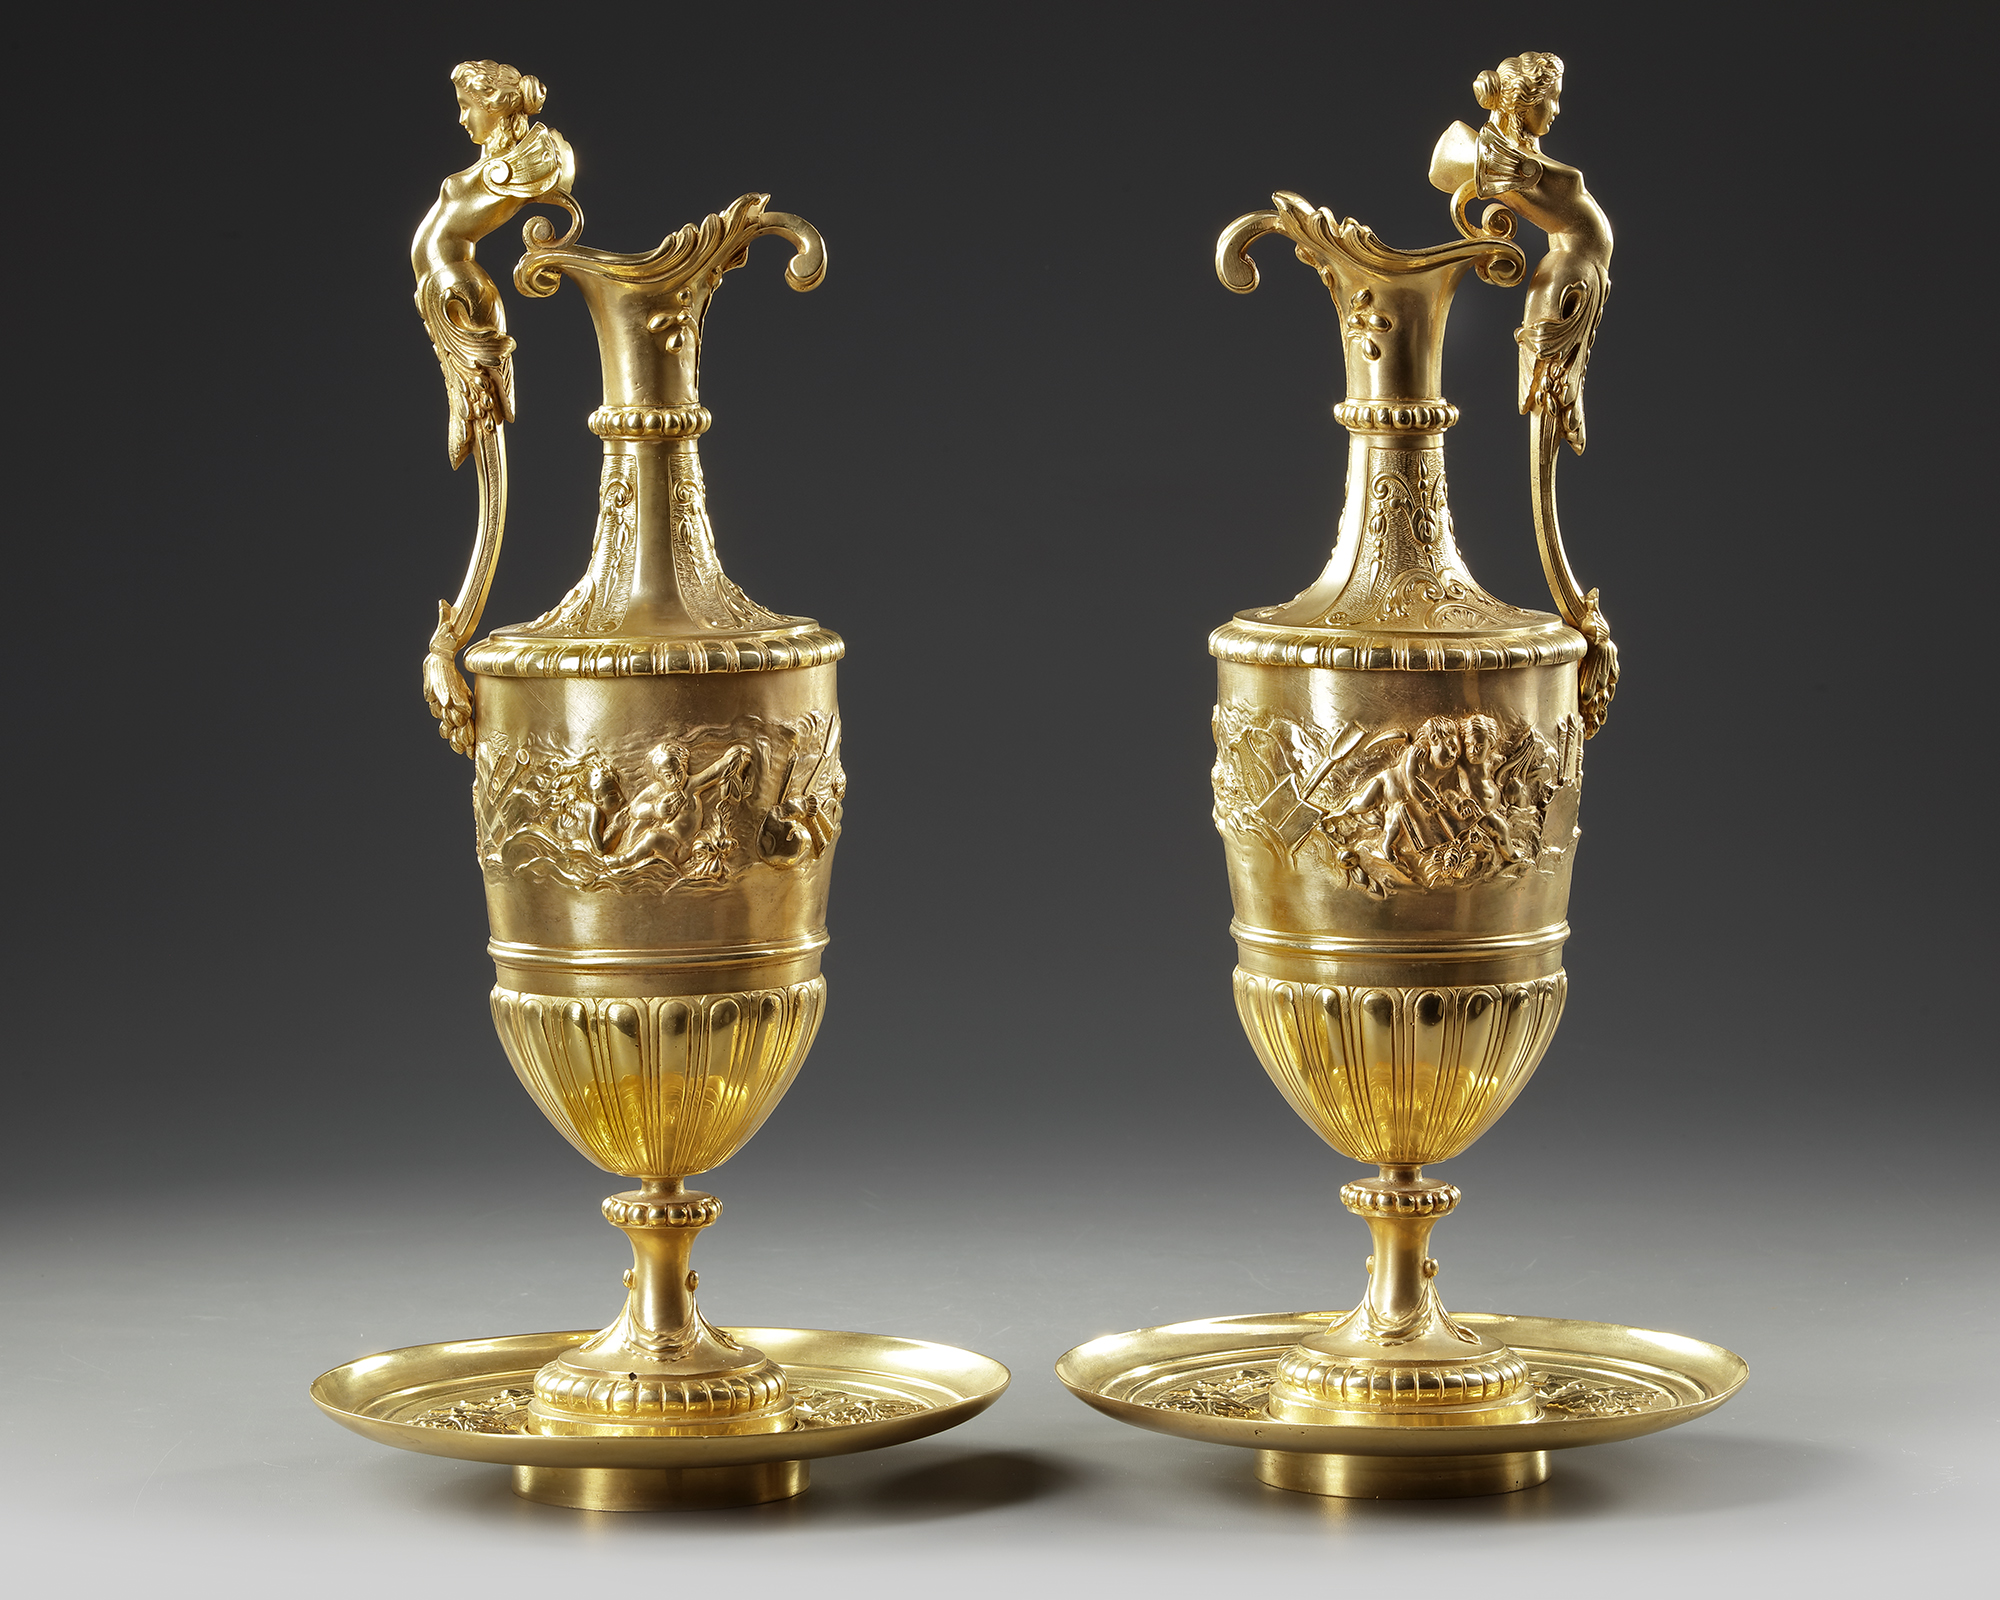 A PAIR OF FRENCH GILT BRONZE EWERS, 19TH CENTURY